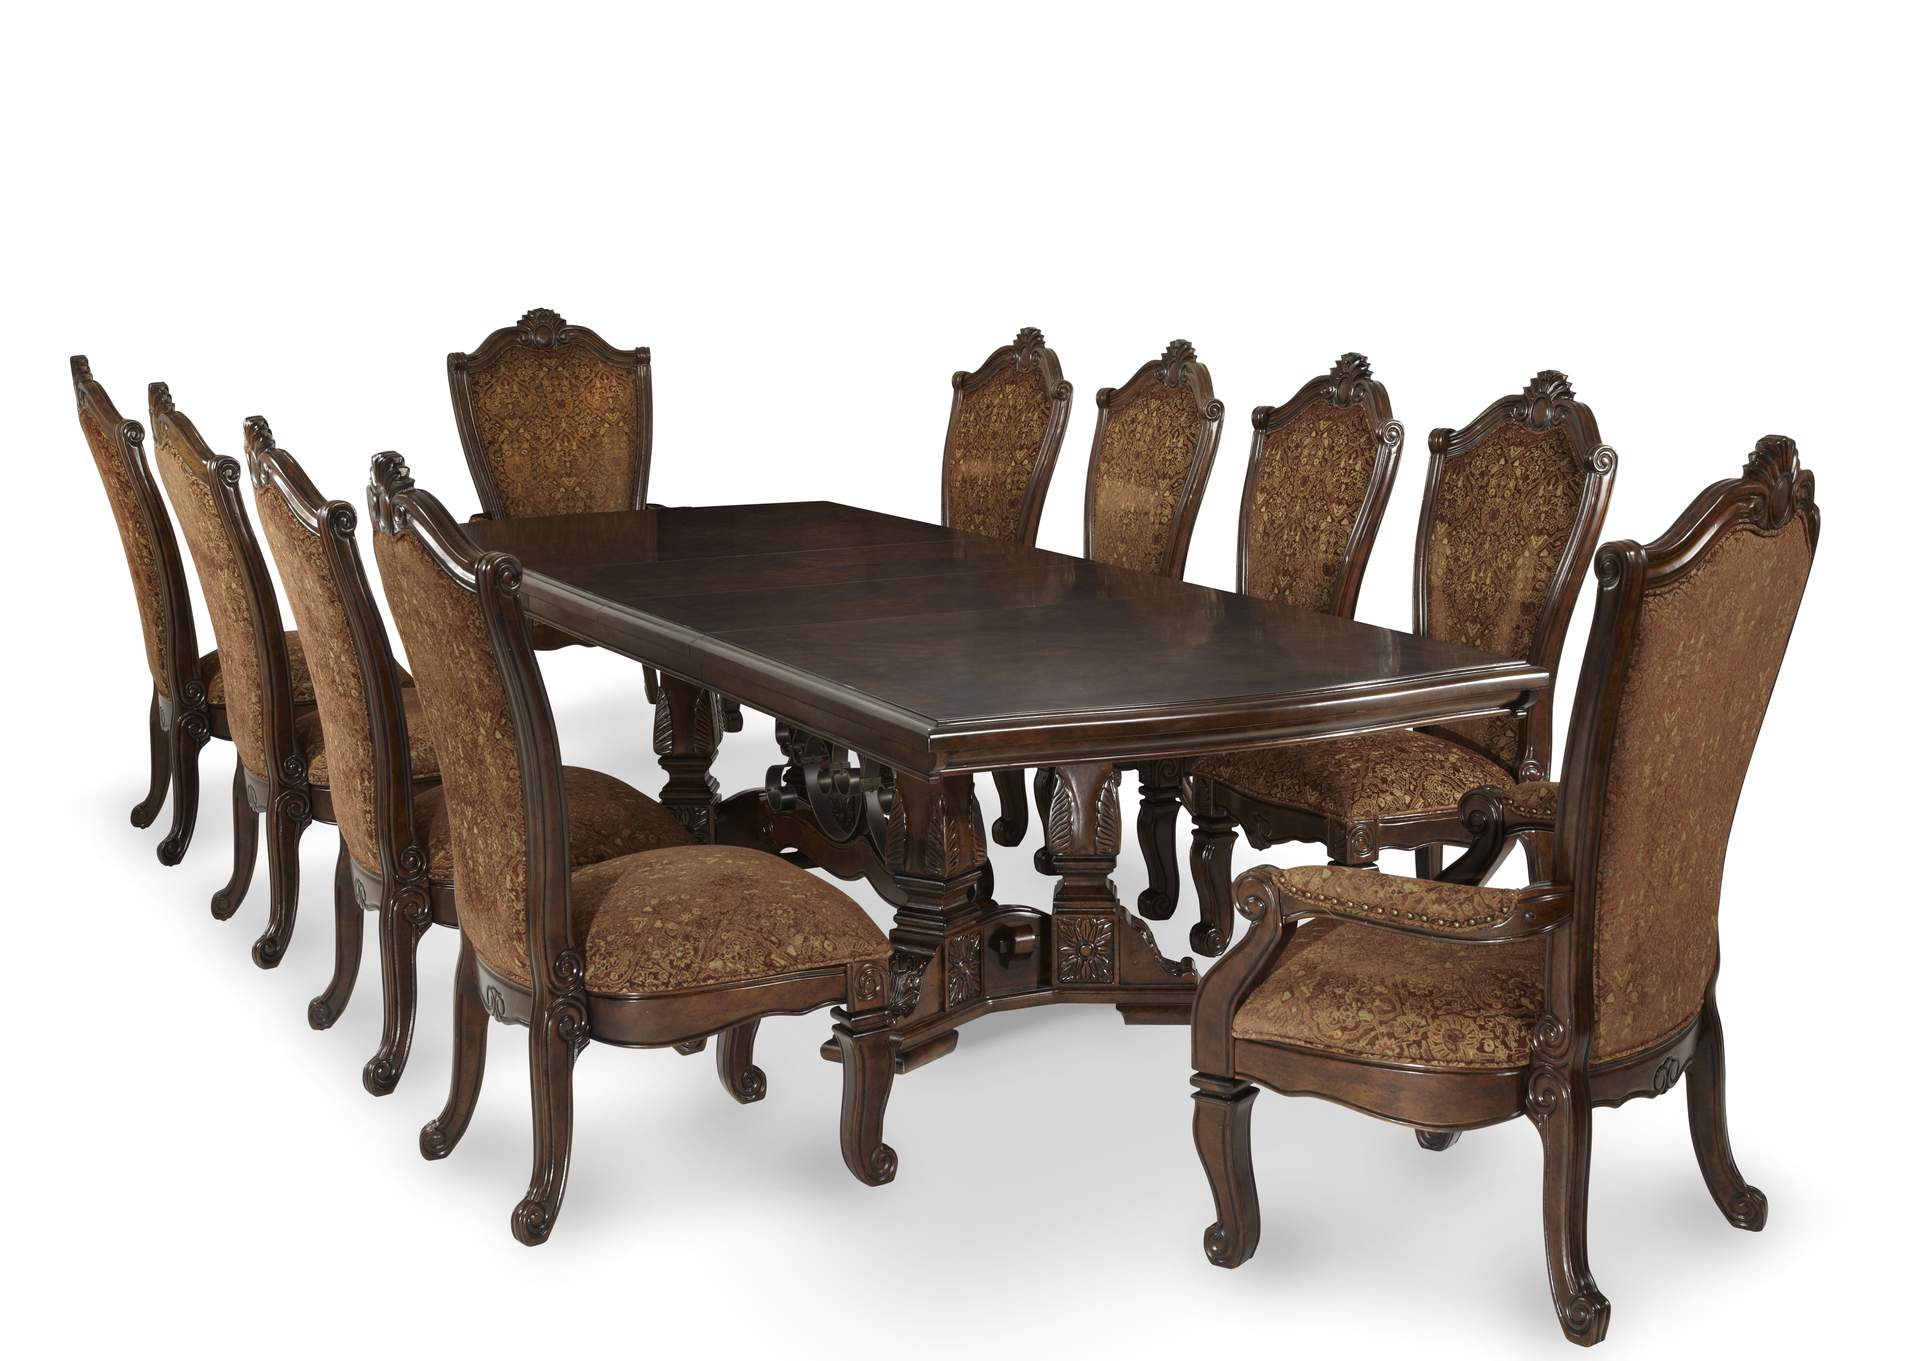 Windsor Court Vintage Fruitwood Dining Table w/2 Arm Chairs & 8 Side Chairs,AICO